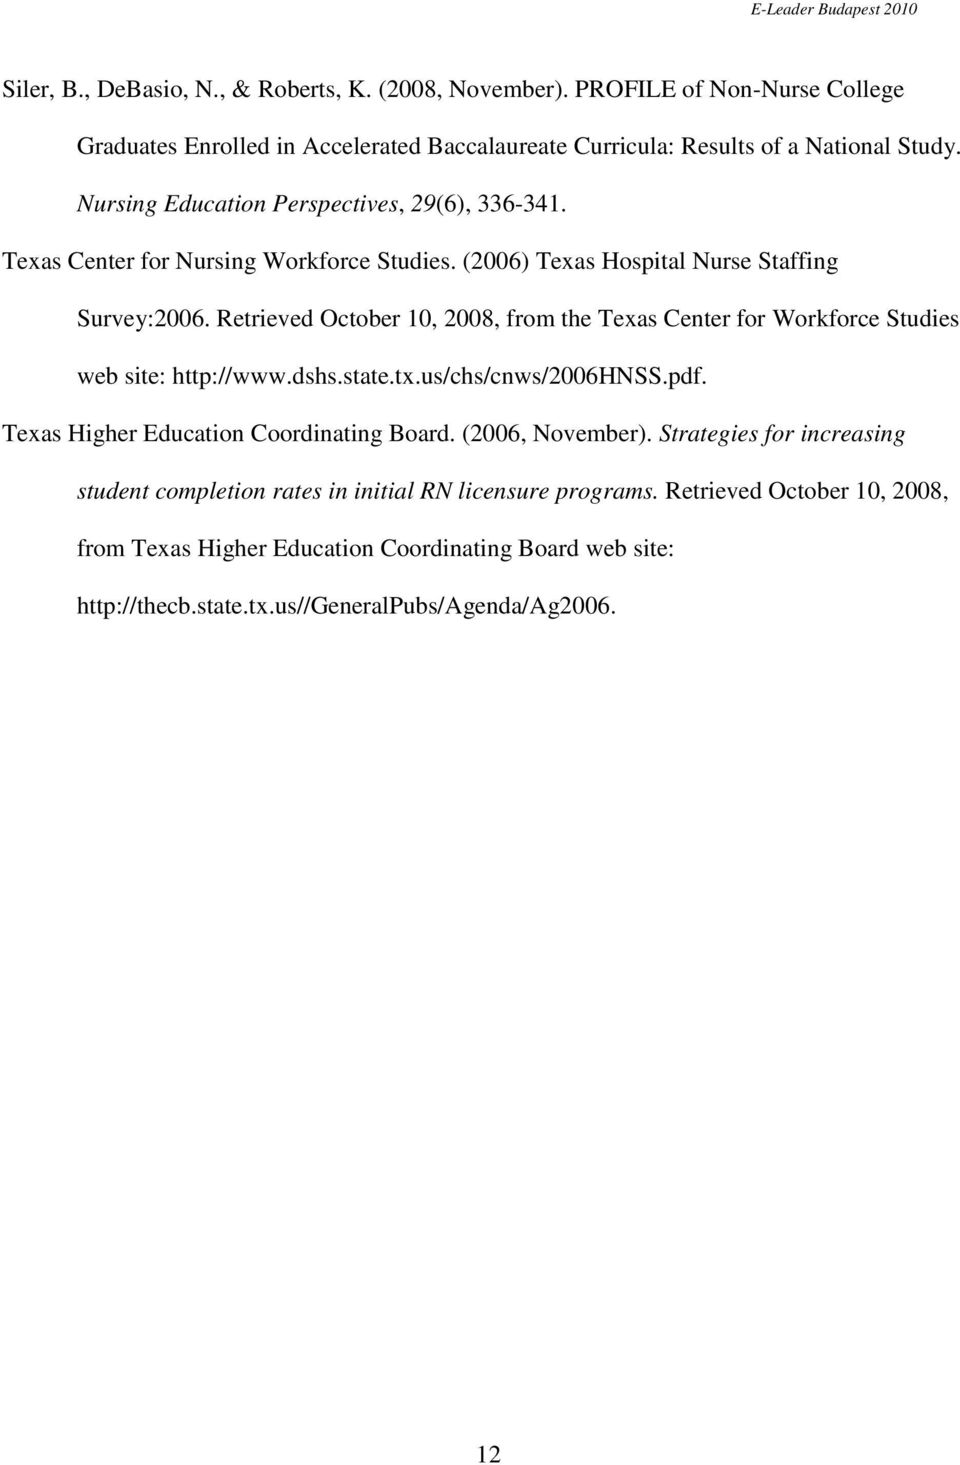 Retrieved October 10, 2008, from the Texas Center for Workforce Studies web site: http://www.dshs.state.tx.us/chs/cnws/2006hnss.pdf. Texas Higher Education Coordinating Board.